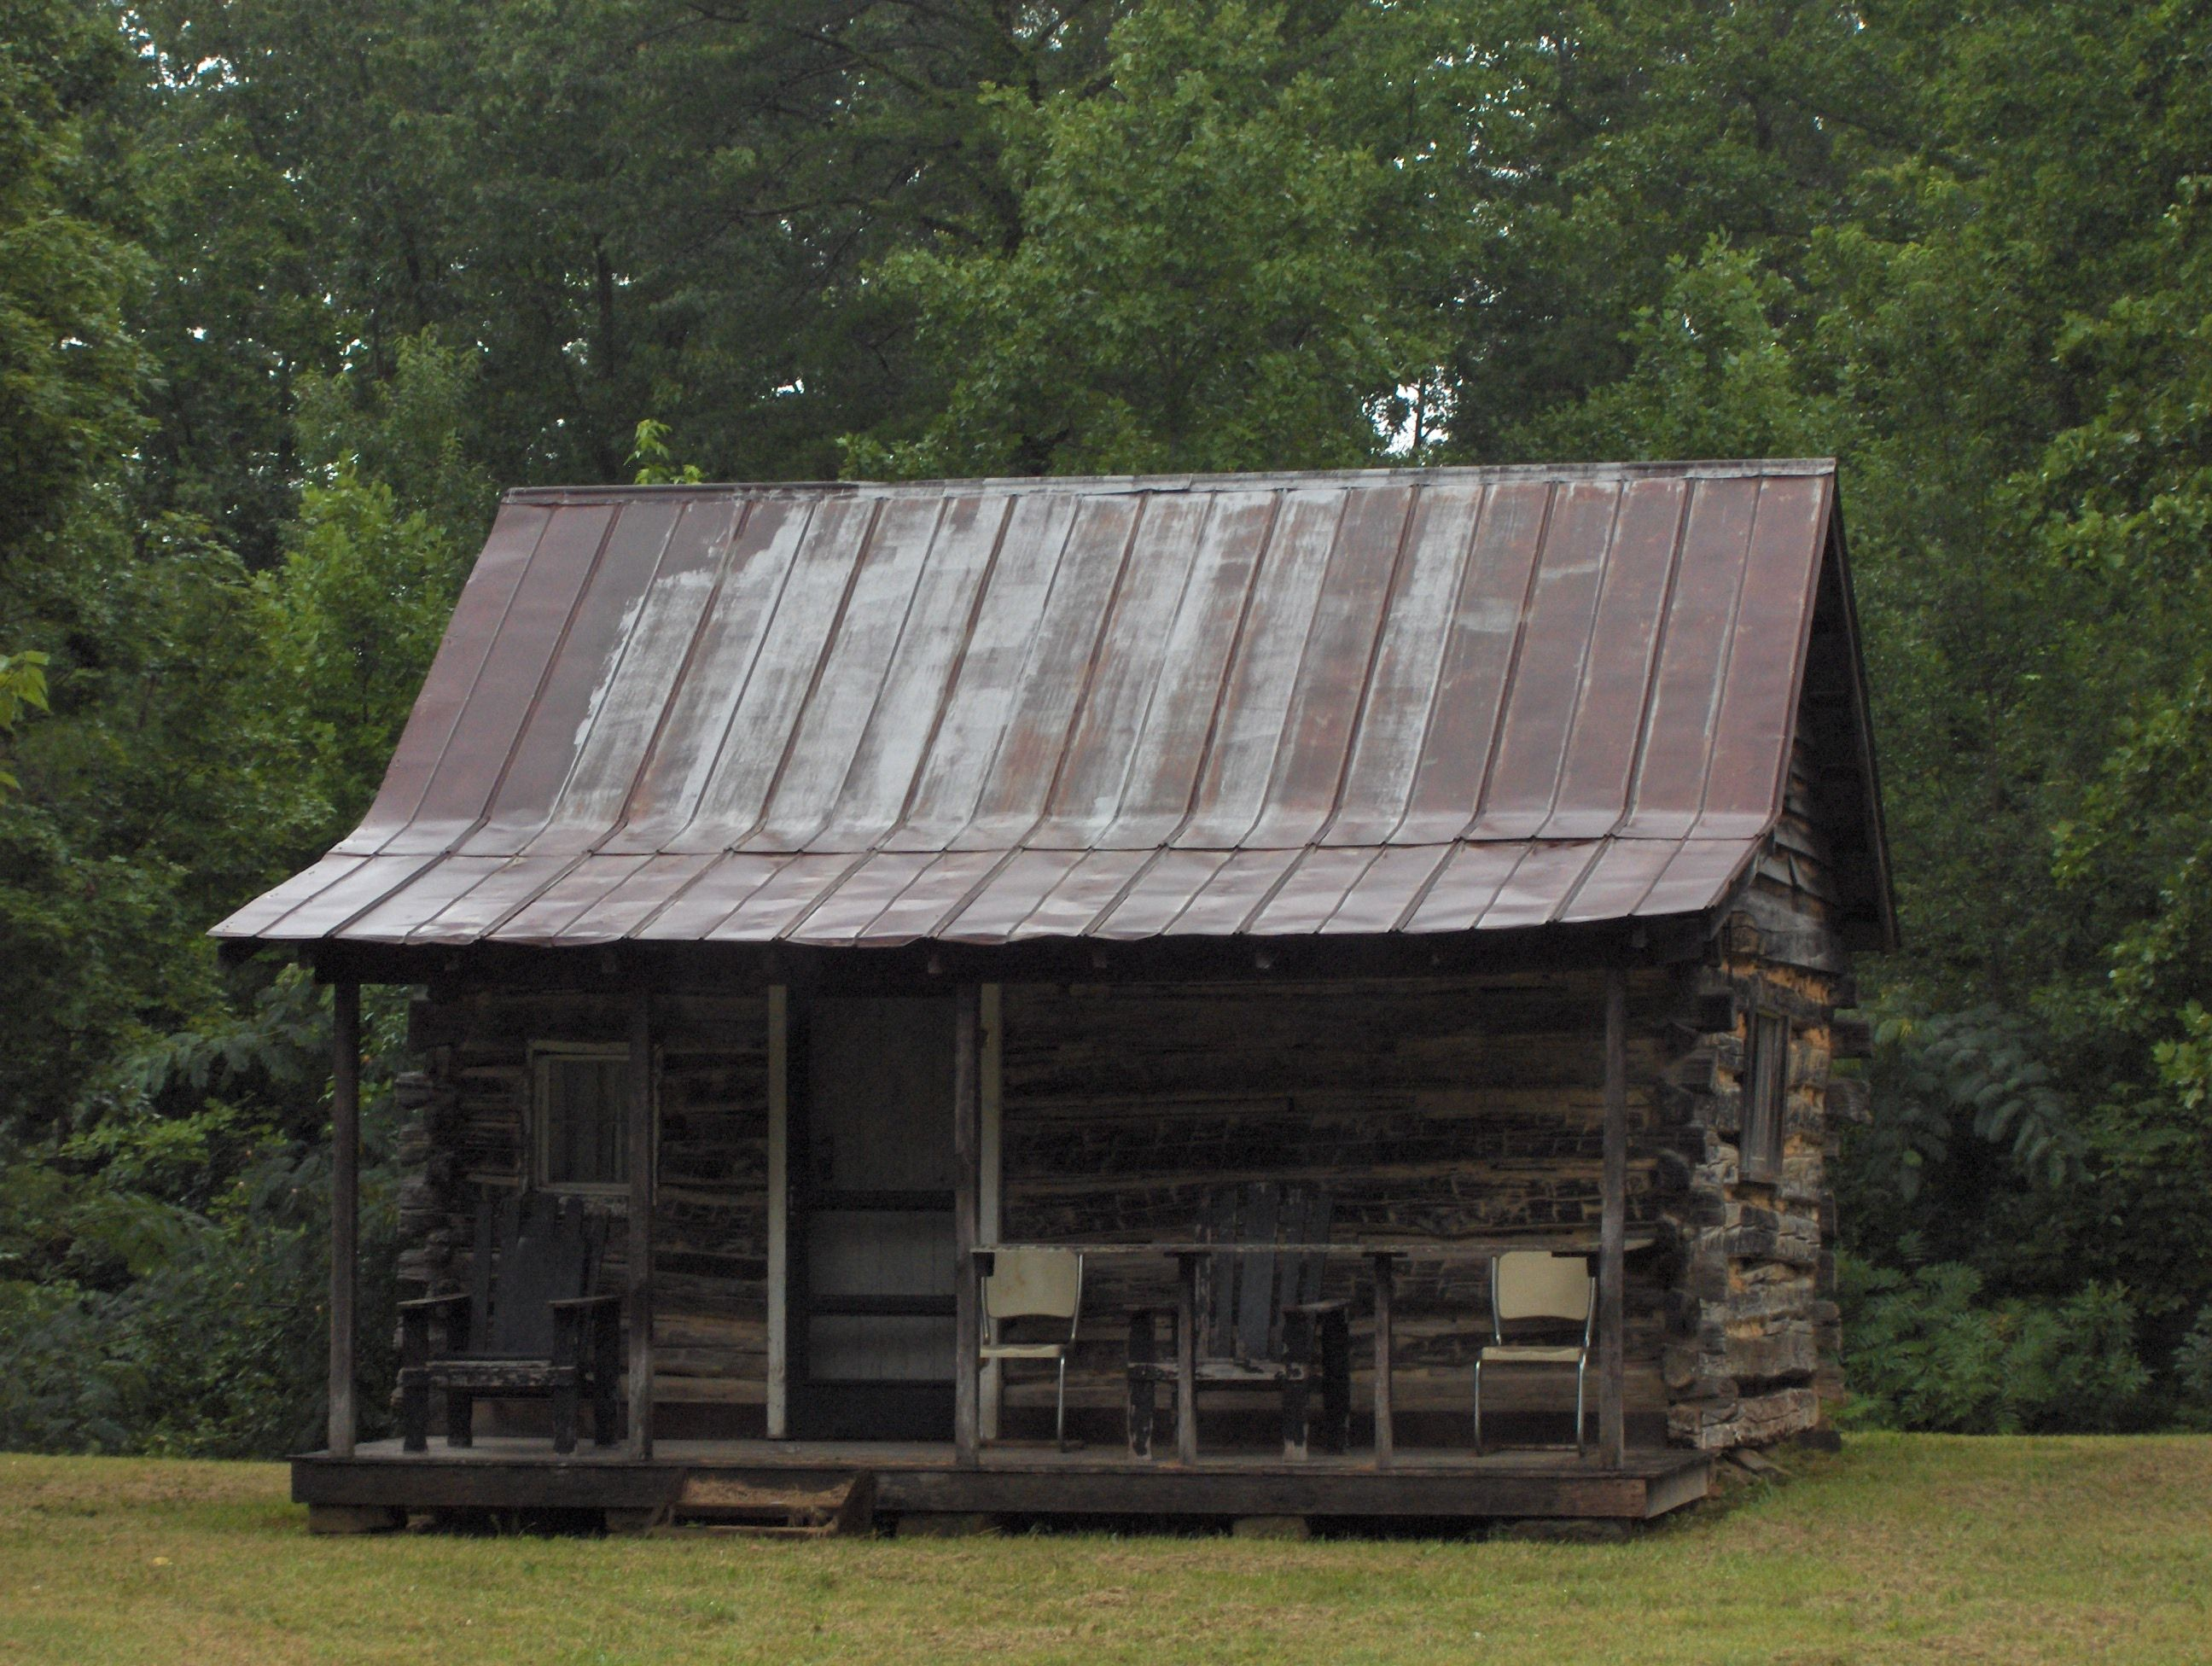 Https Stldesignworld Files Wordpress Com 2009 08 020 Jpg Log Cabin Exterior Cabin Small Log Cabin